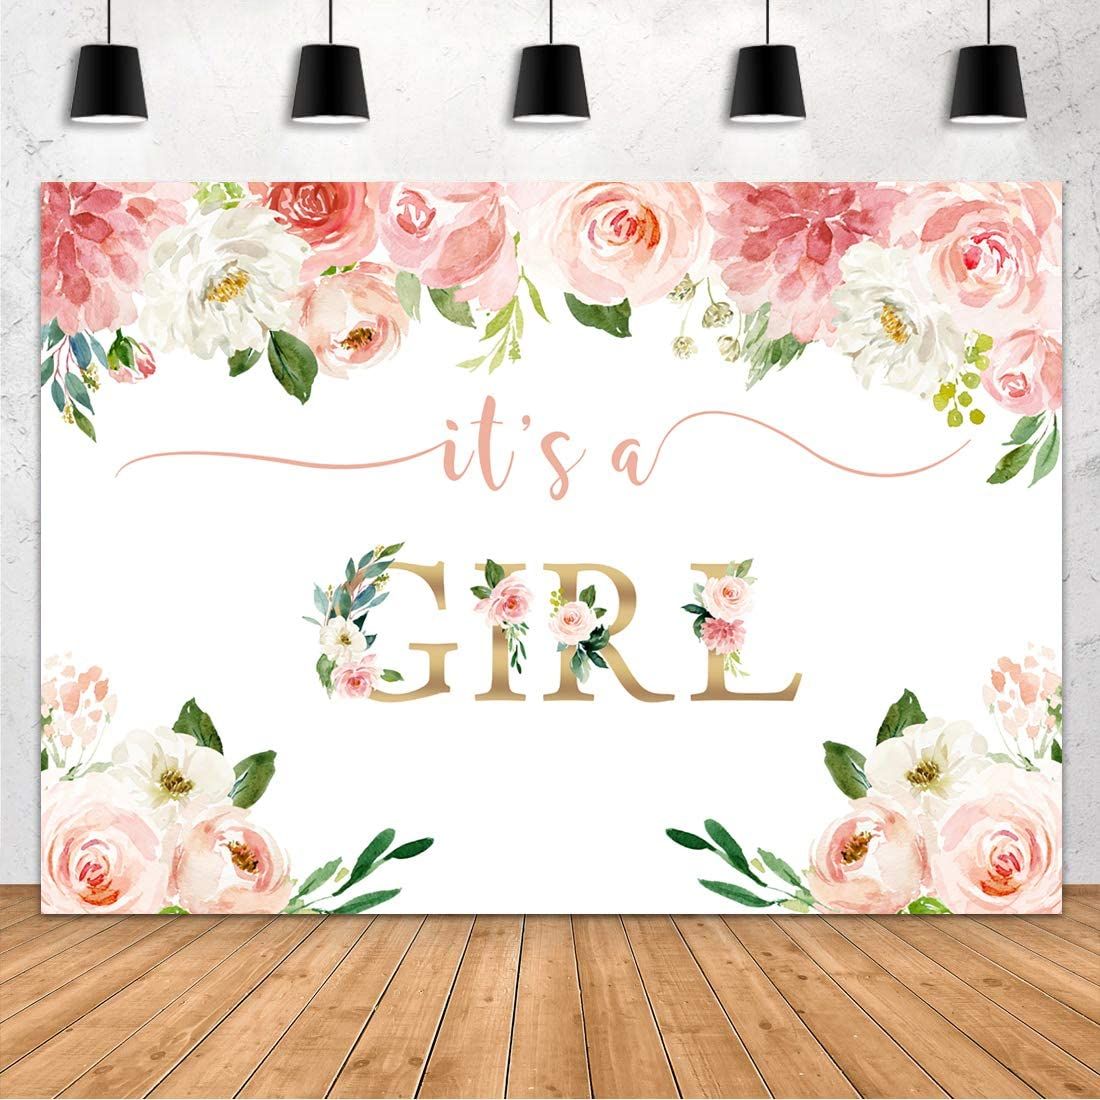 Aperturee It's a Girl Baby Shower Backdrop Watercolor Pink Floral Photography Background 7x5ft Flower Baby Girl Party Decorations Photo Booth Photoshoot Props Banner Supplies